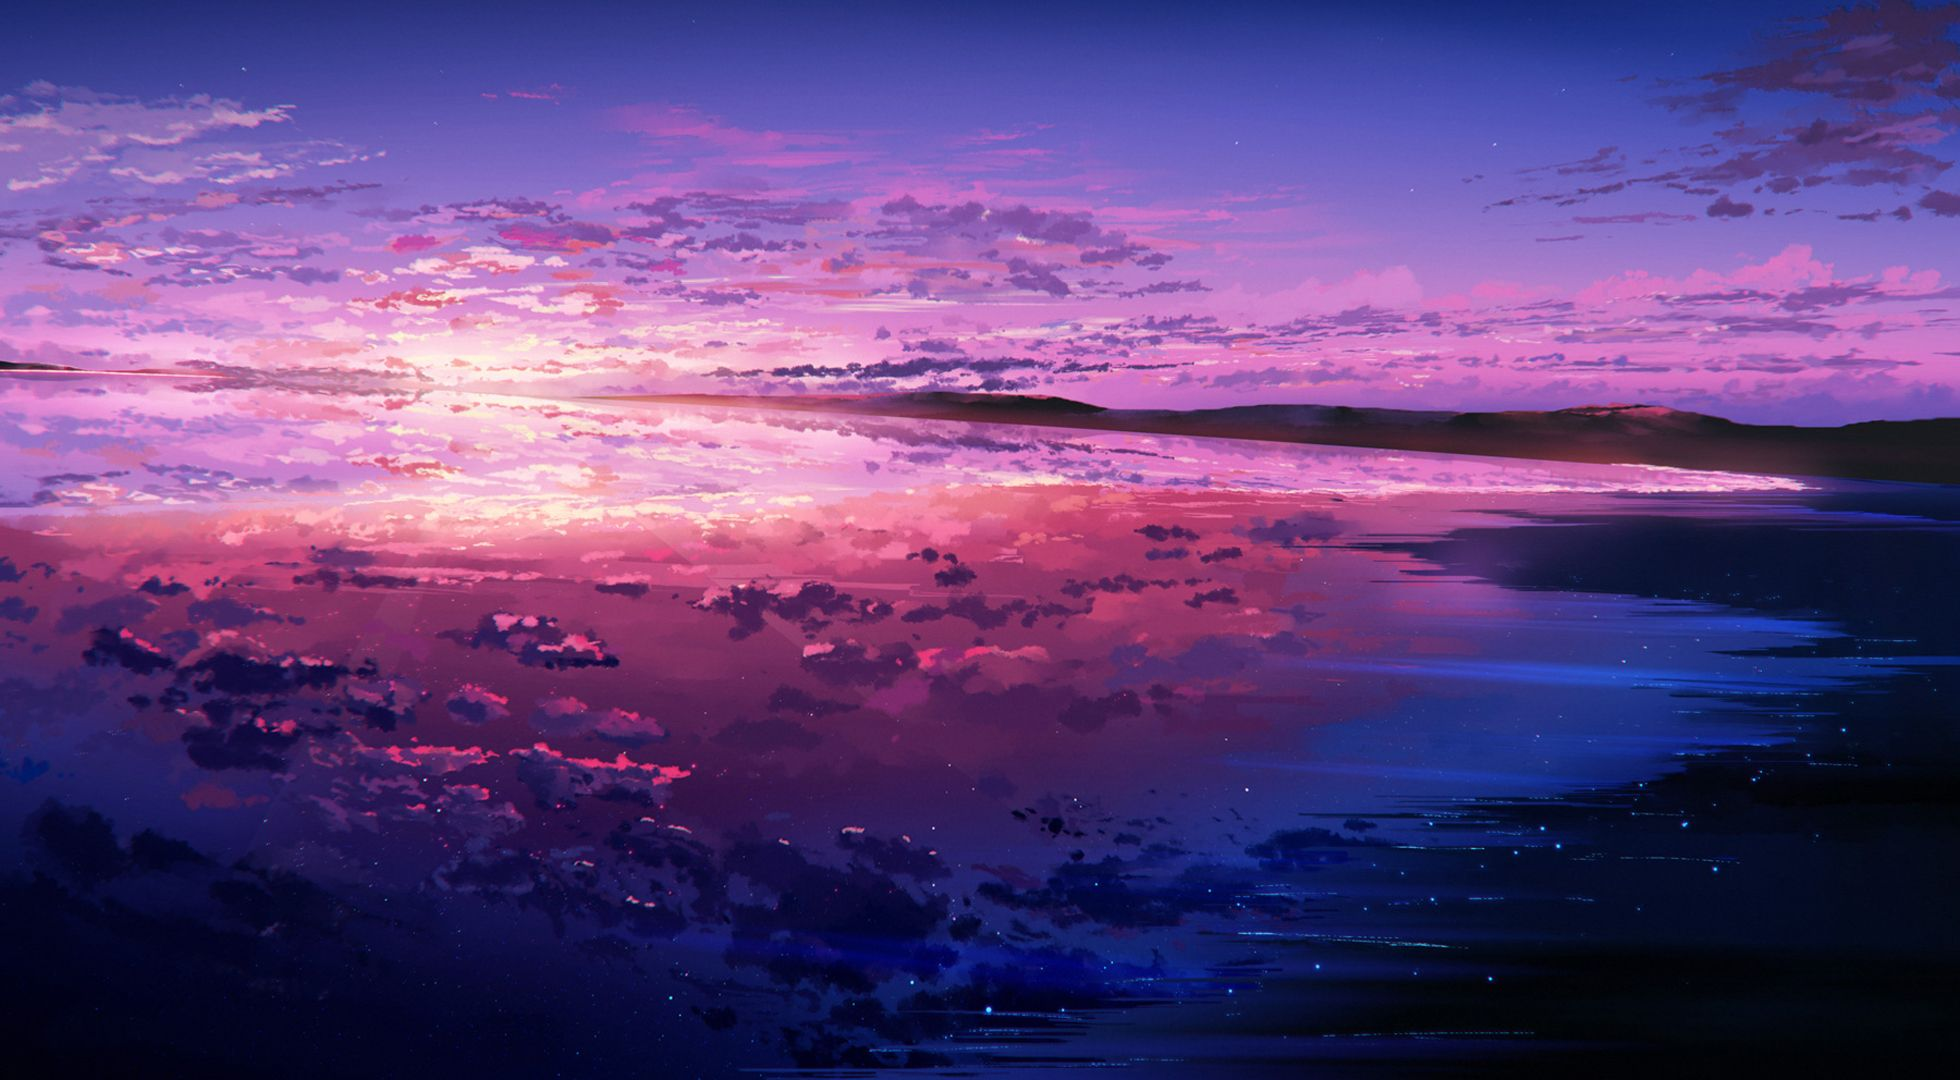 Purple Sunset Anime Wallpapers - Wallpaper Cave